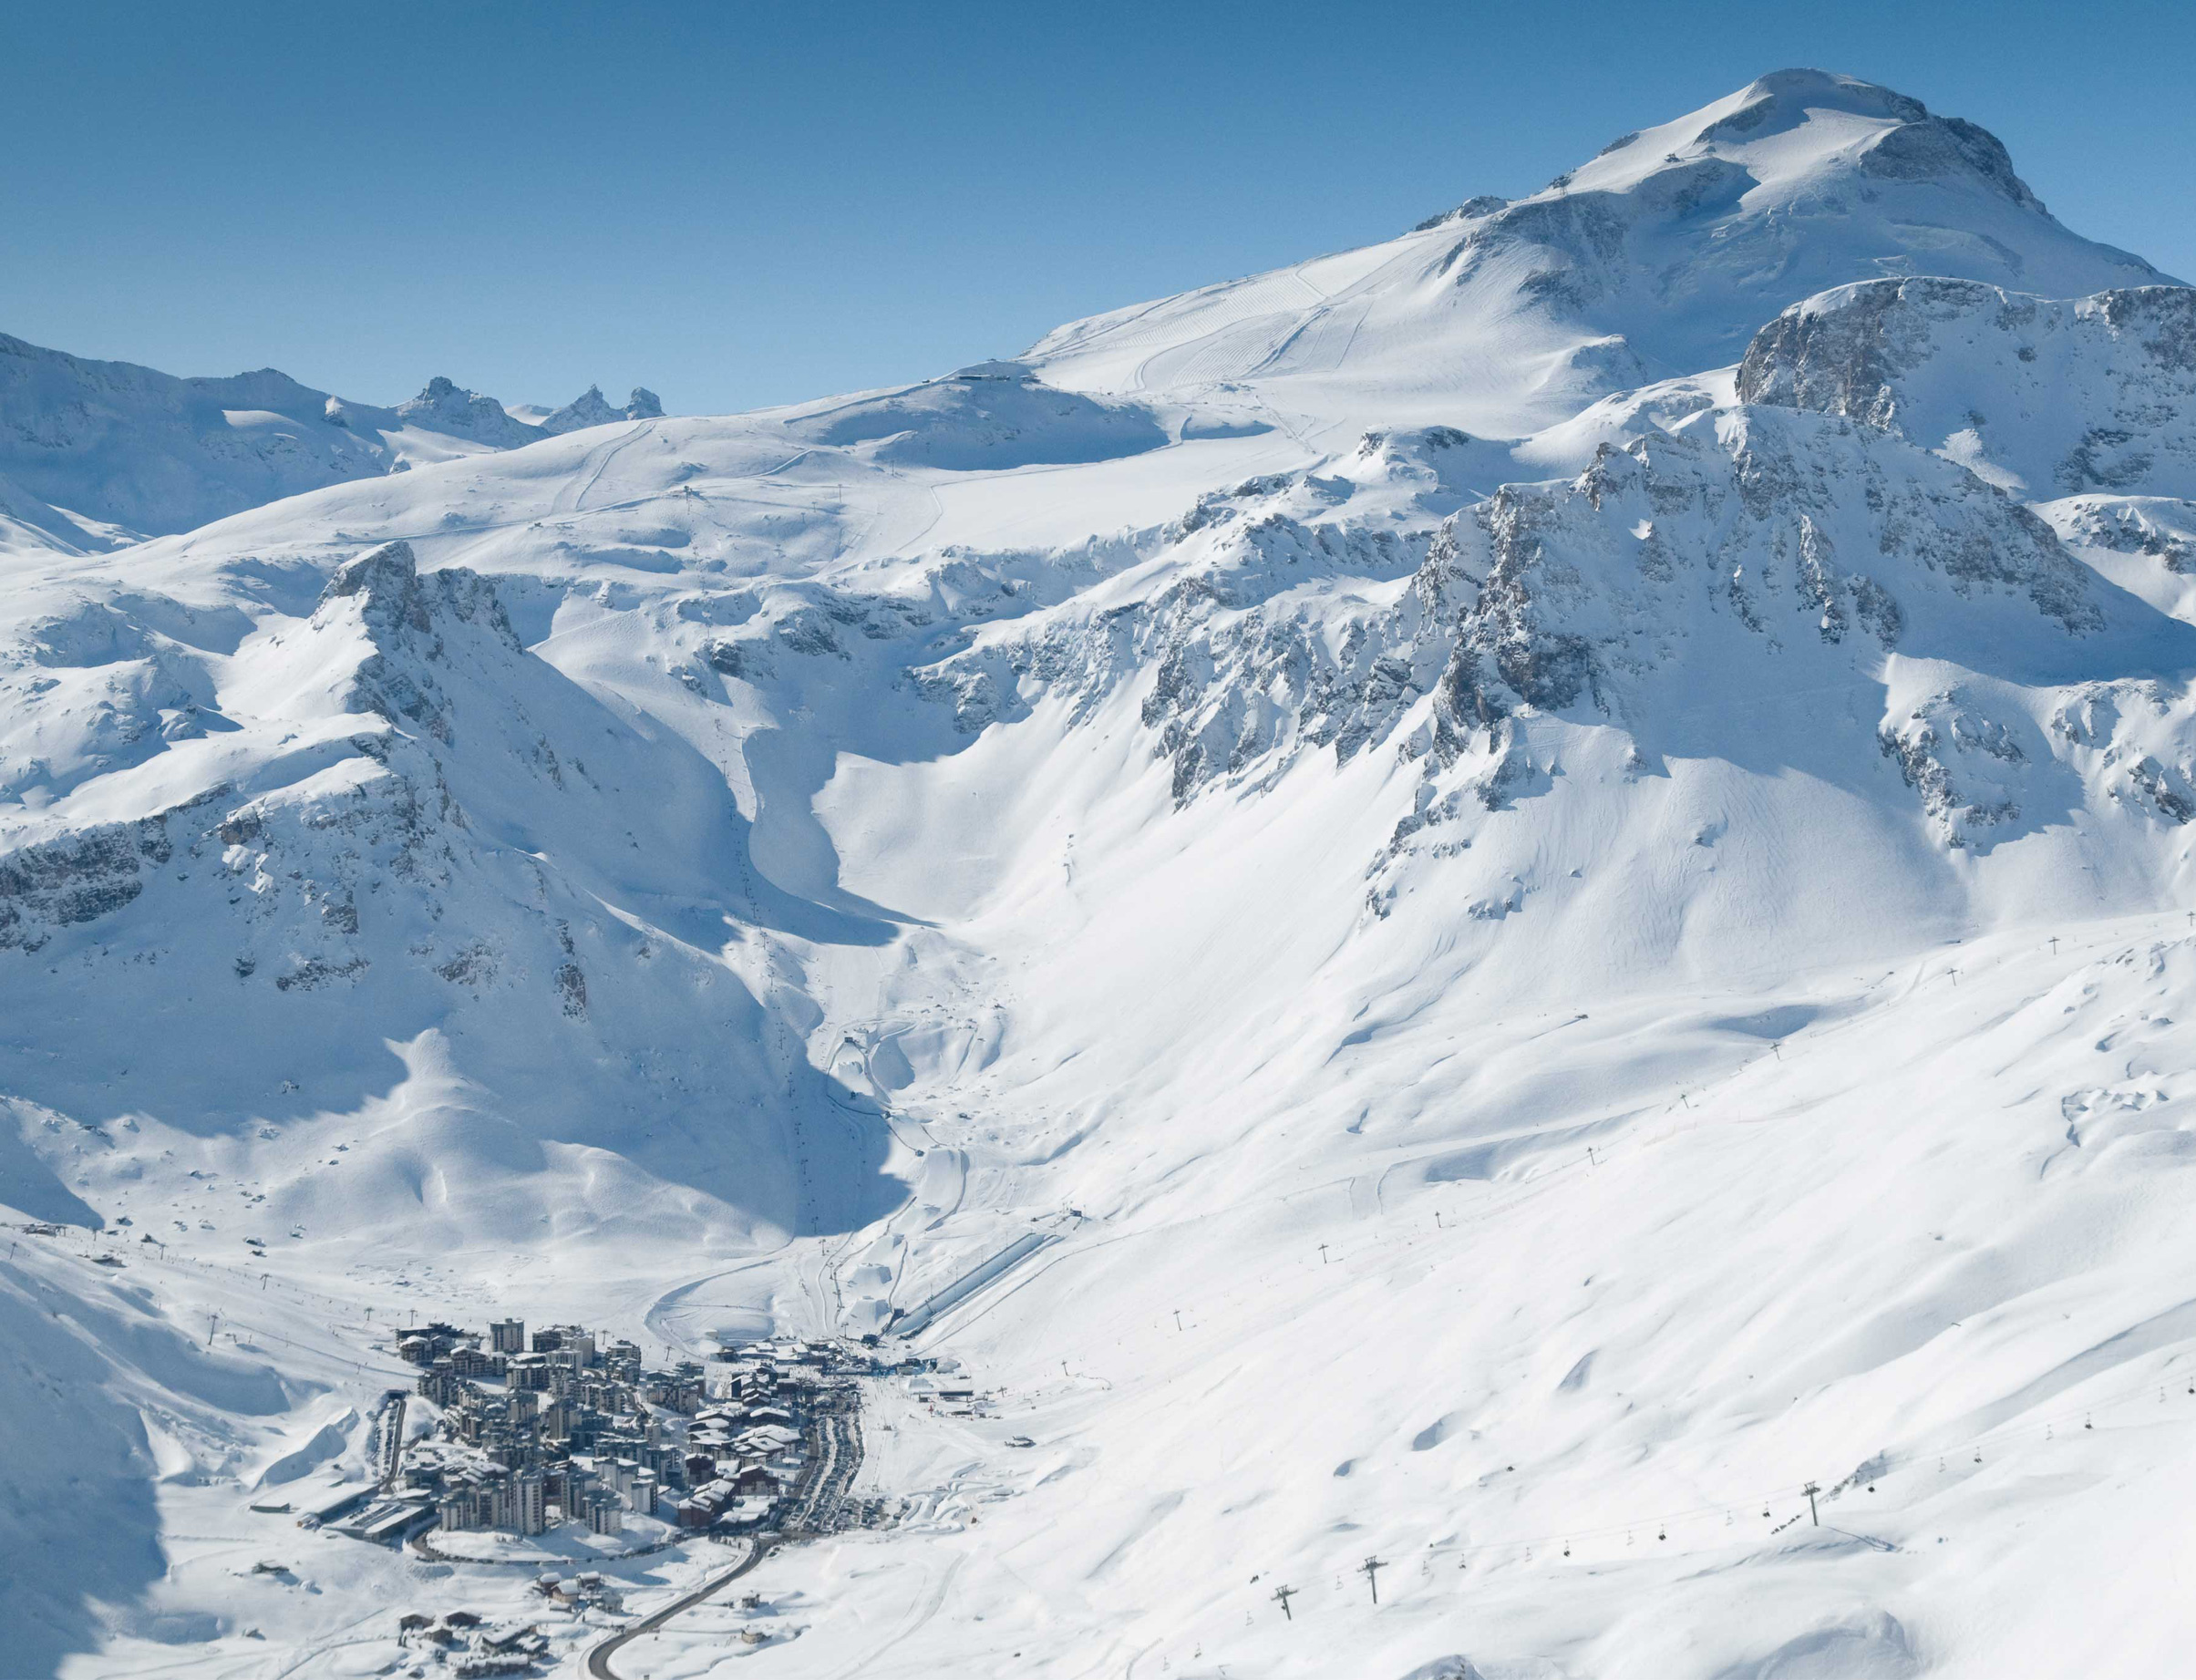 Tignes from above